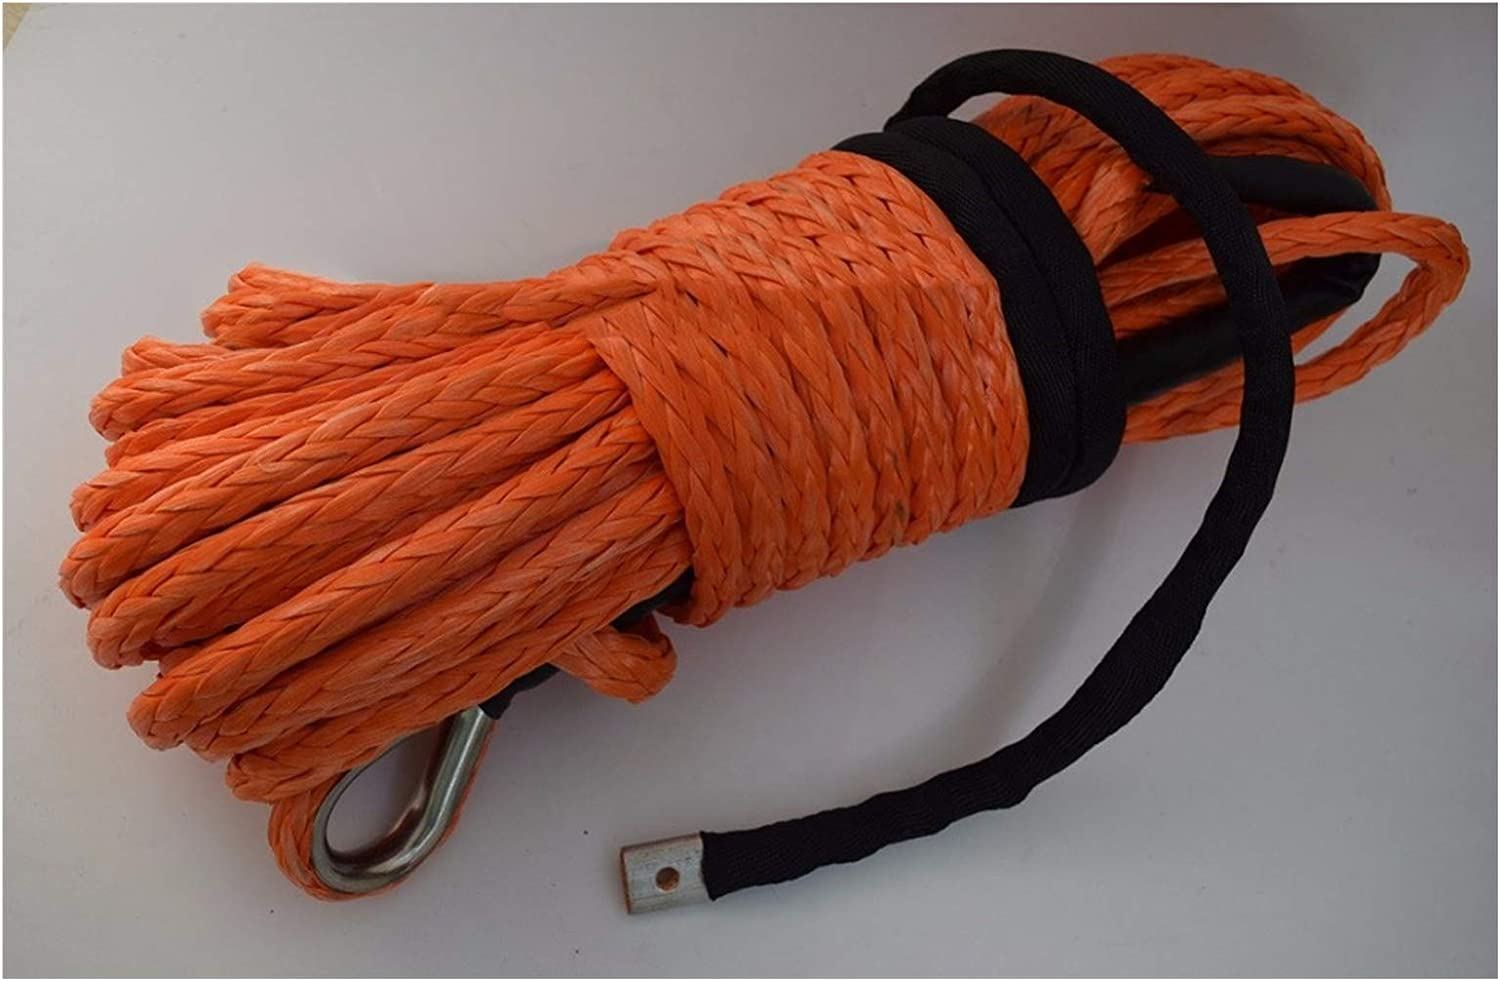 12mm30m Orange Synthetic Winch Rope Road With Thimble Inventory cleanup Max 53% OFF selling sale S Off